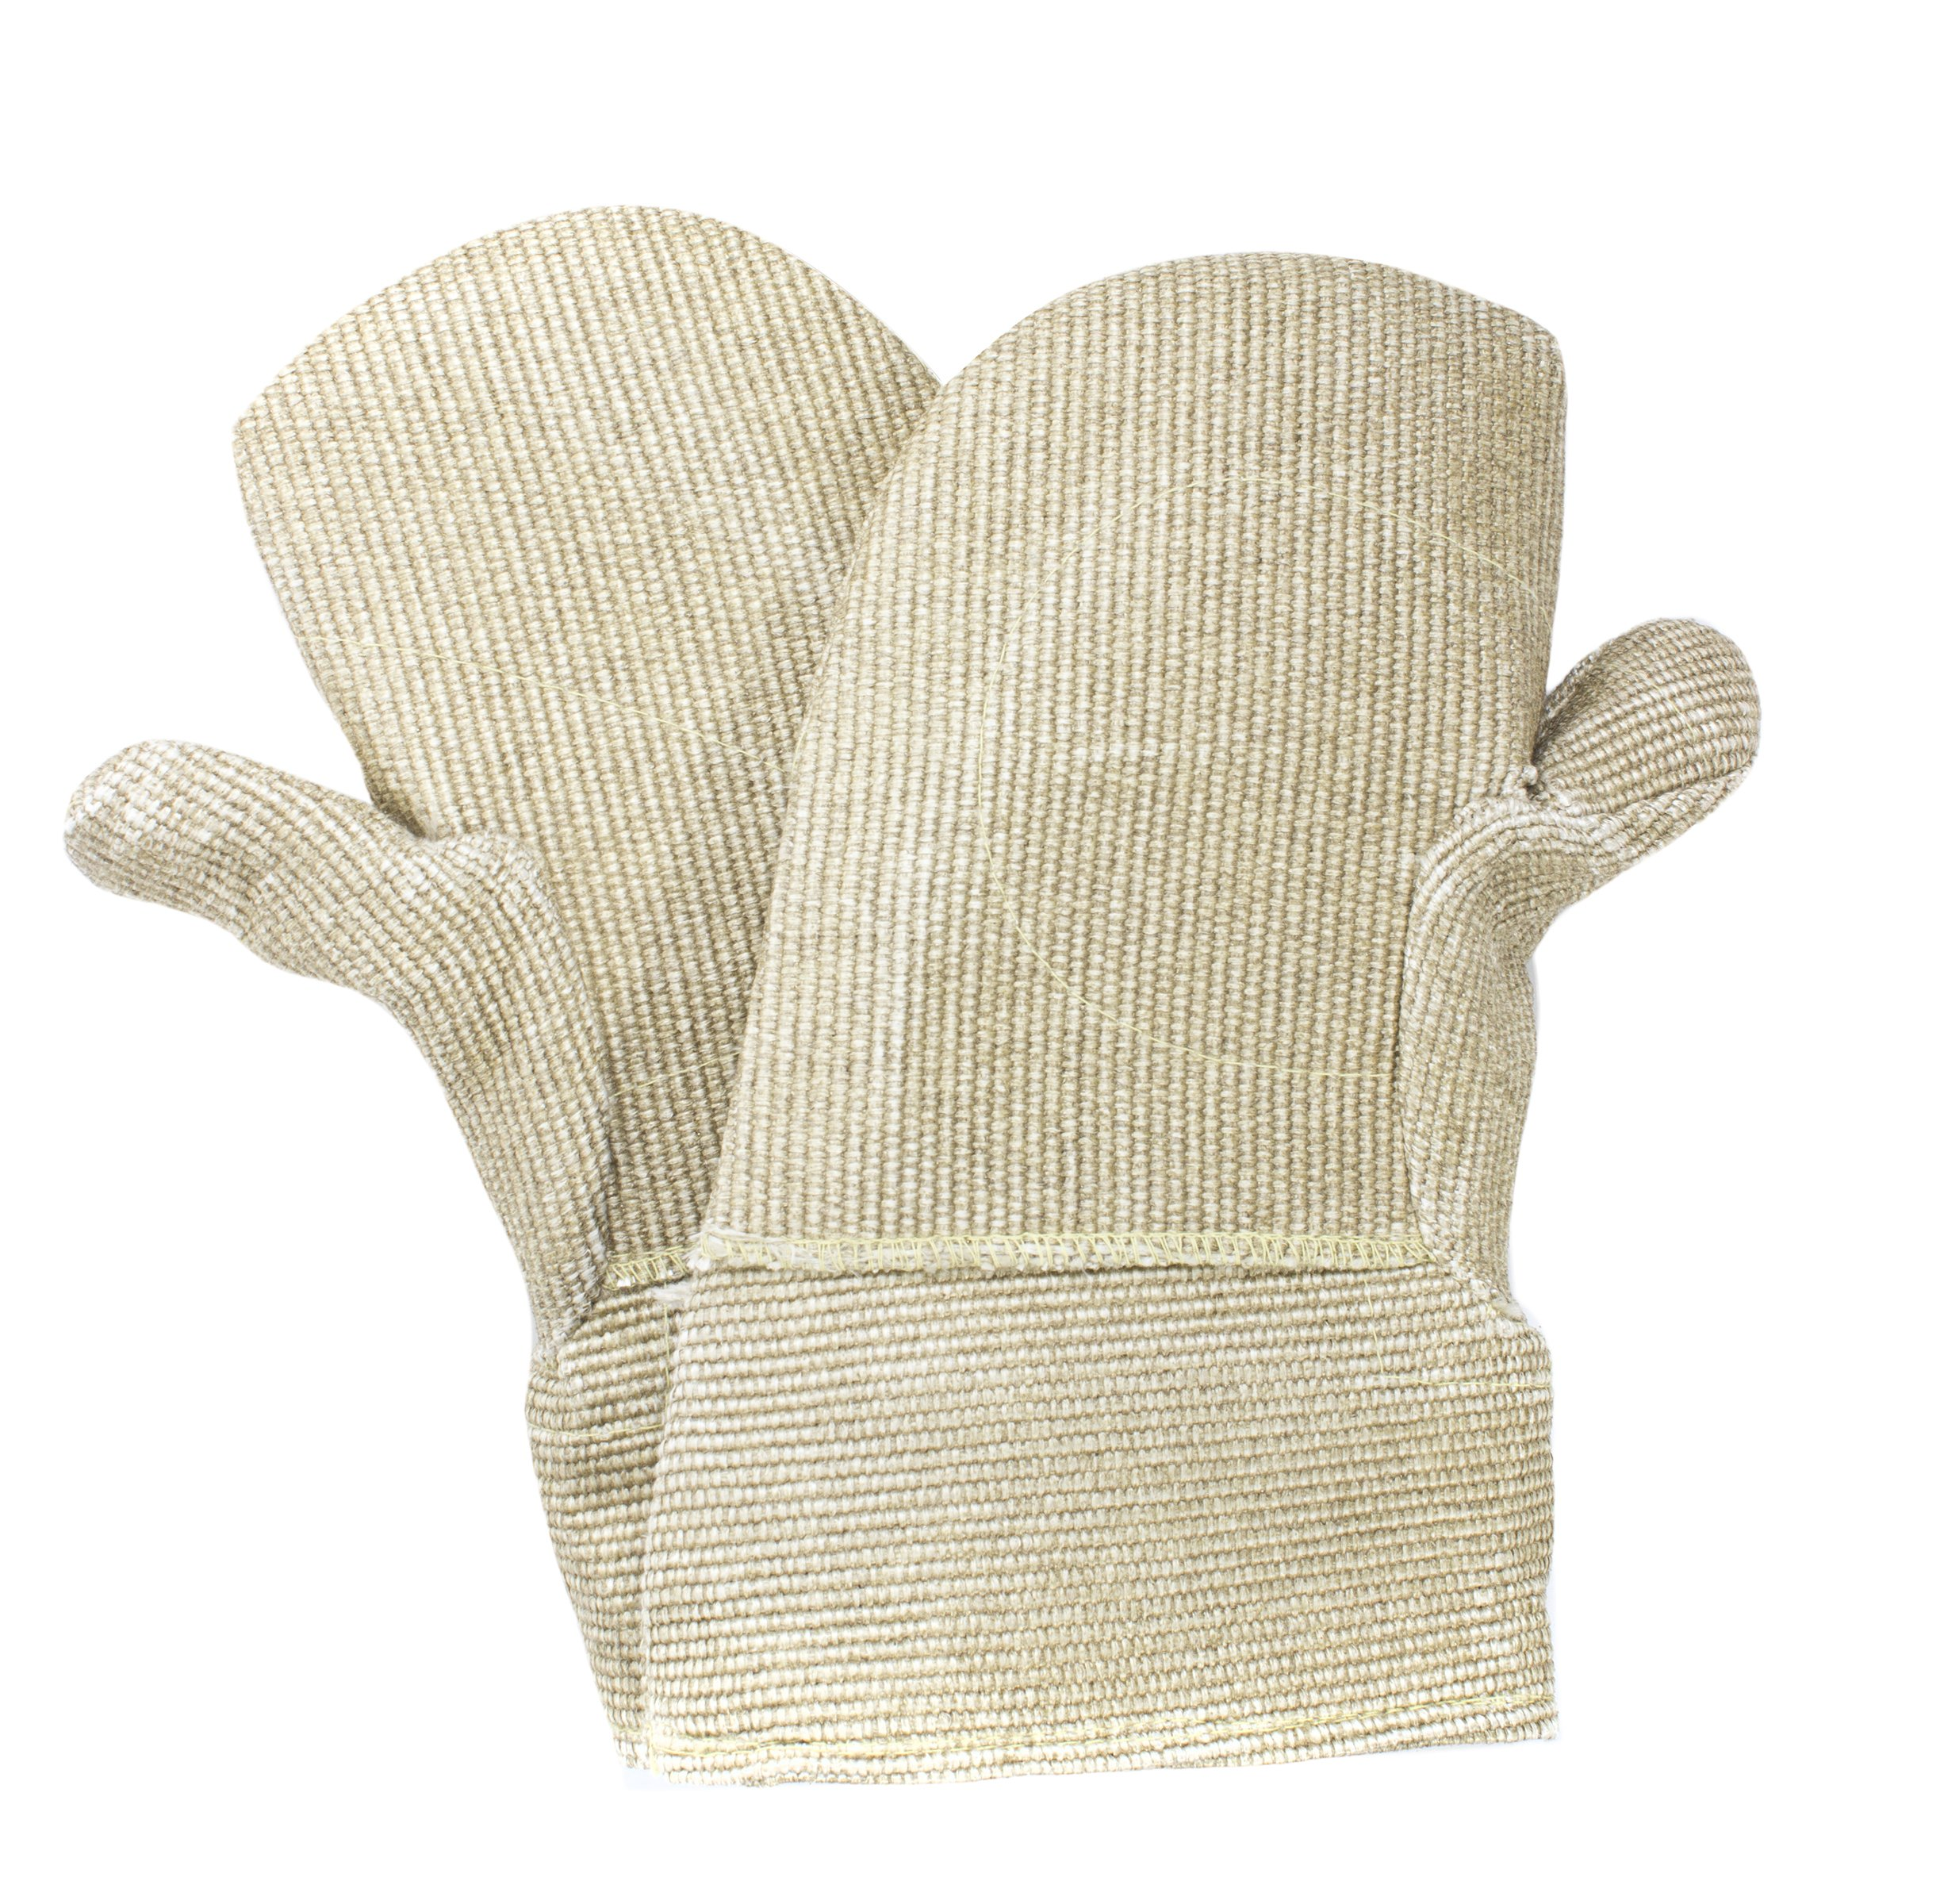 National Safety Apparel M52PCLW00214 PBI/Kevlar Mitten with Thermobest Cuff, 14'', Brown